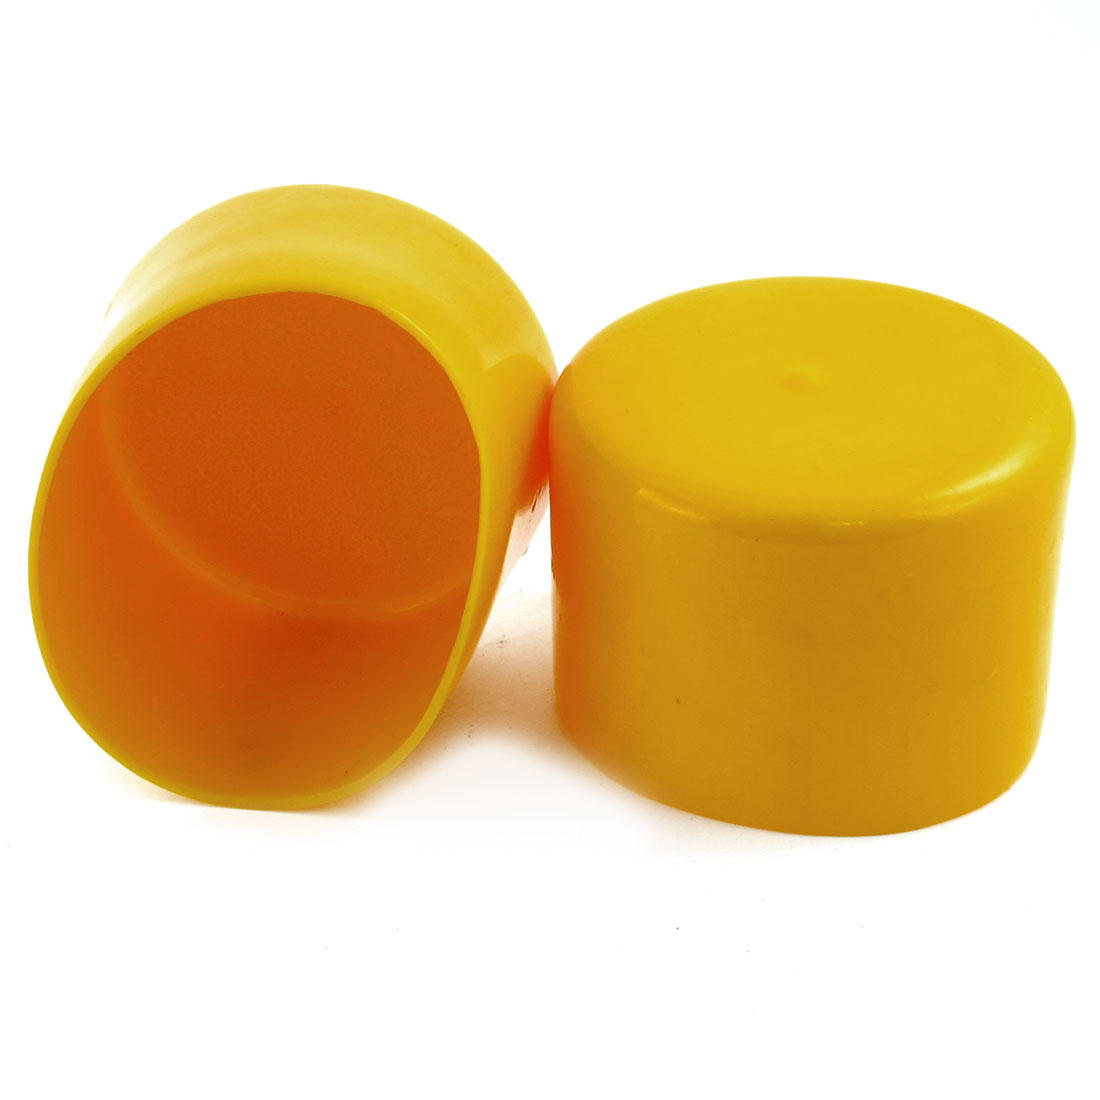 2 Pcs 83mm Dia Yellow Rubber Furniture Chair Leg Covers Floor Protectors